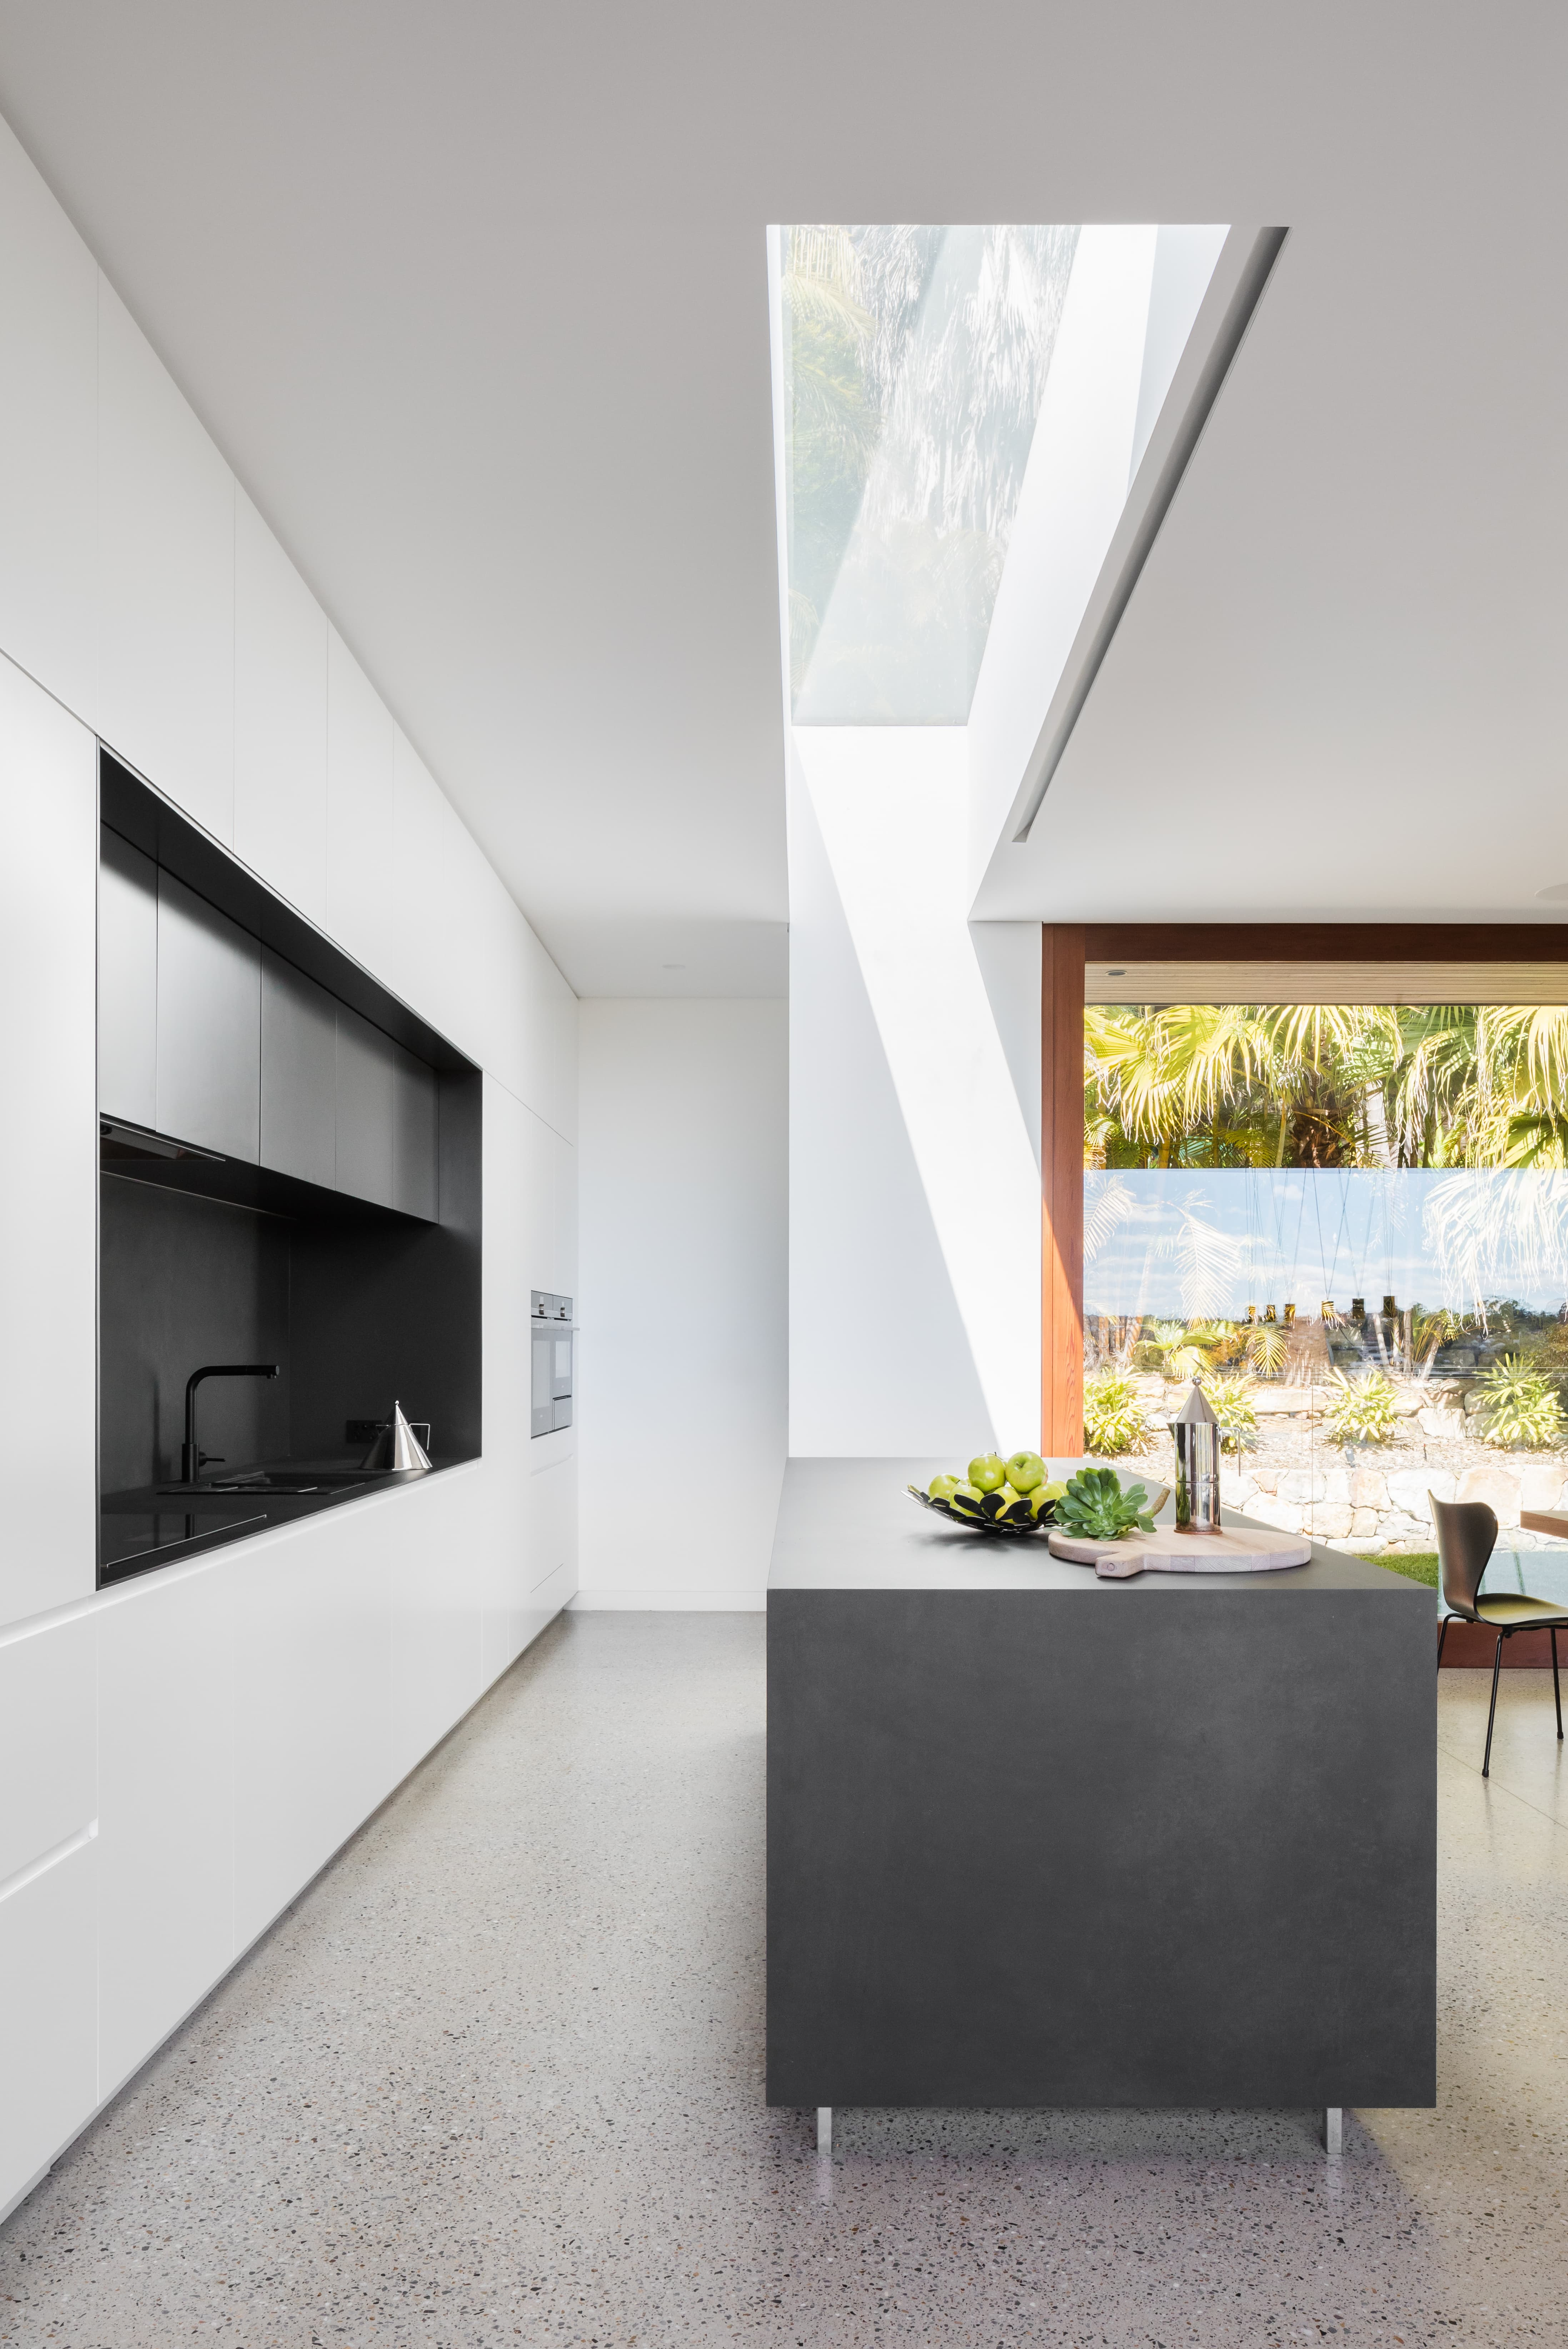 Set Above The Streetscape In Sydney's North Shore Suburb Of Middle Cove, H House Is Referred To As The 'tree House' By Its Owne